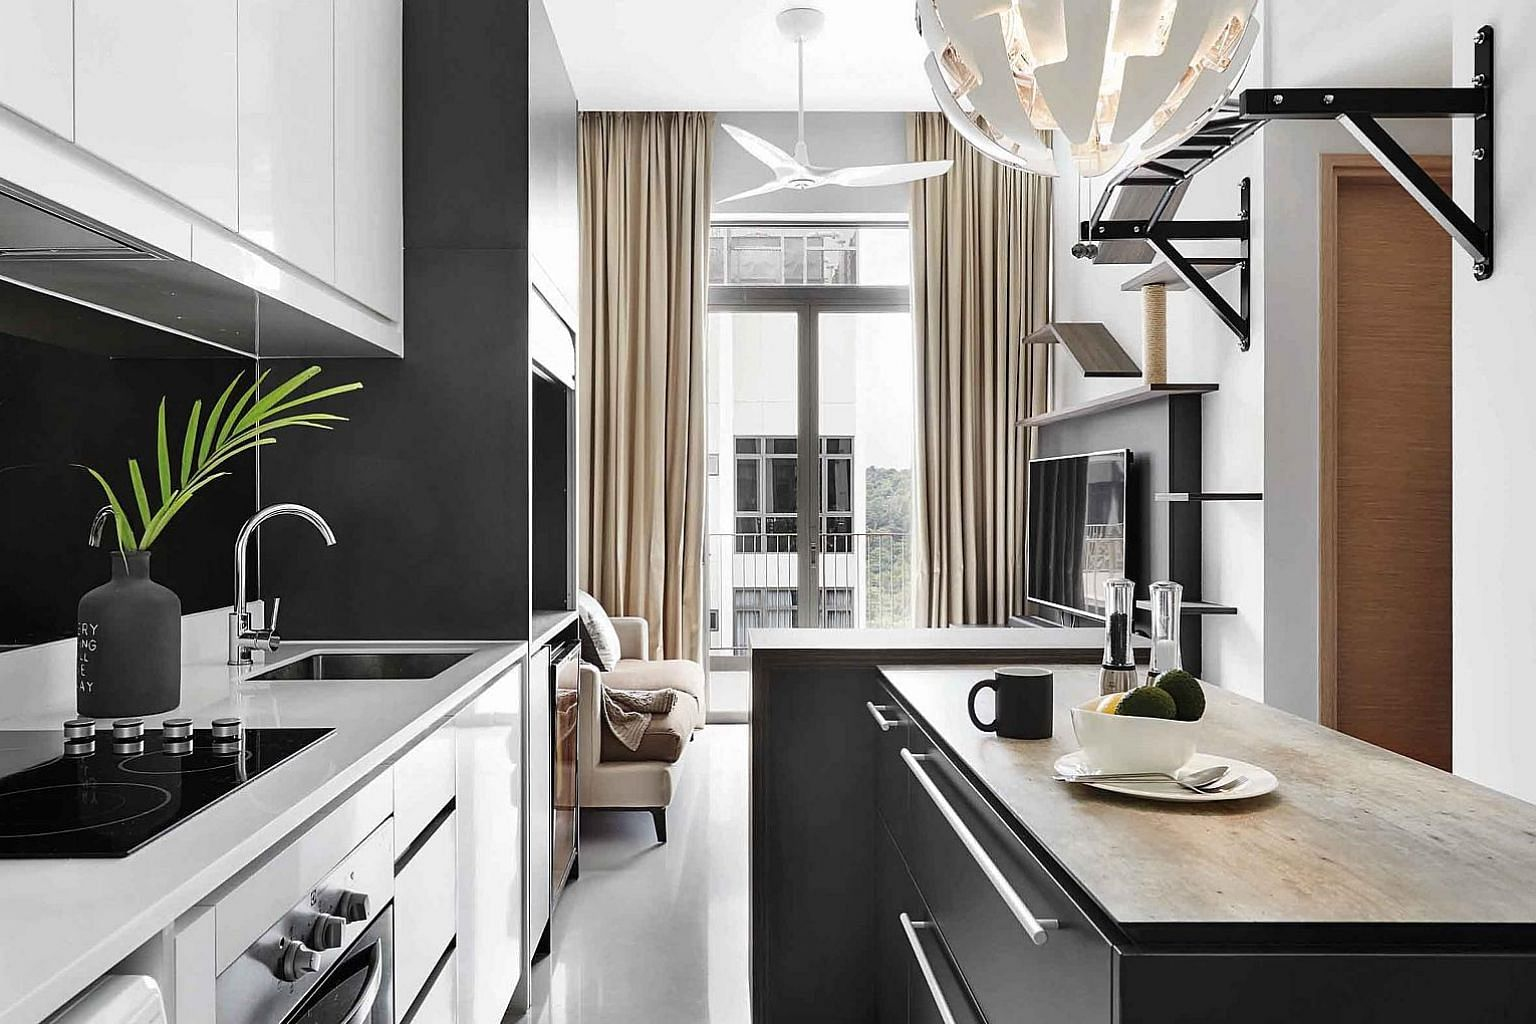 The space below the dining table conceals the food bowls and cat litter of the owner's pets, hence keeping the area visually clutter-free. A modern contemporary vibe permeates the apartment (left). The space below the loft (above) is an ideal spot fo